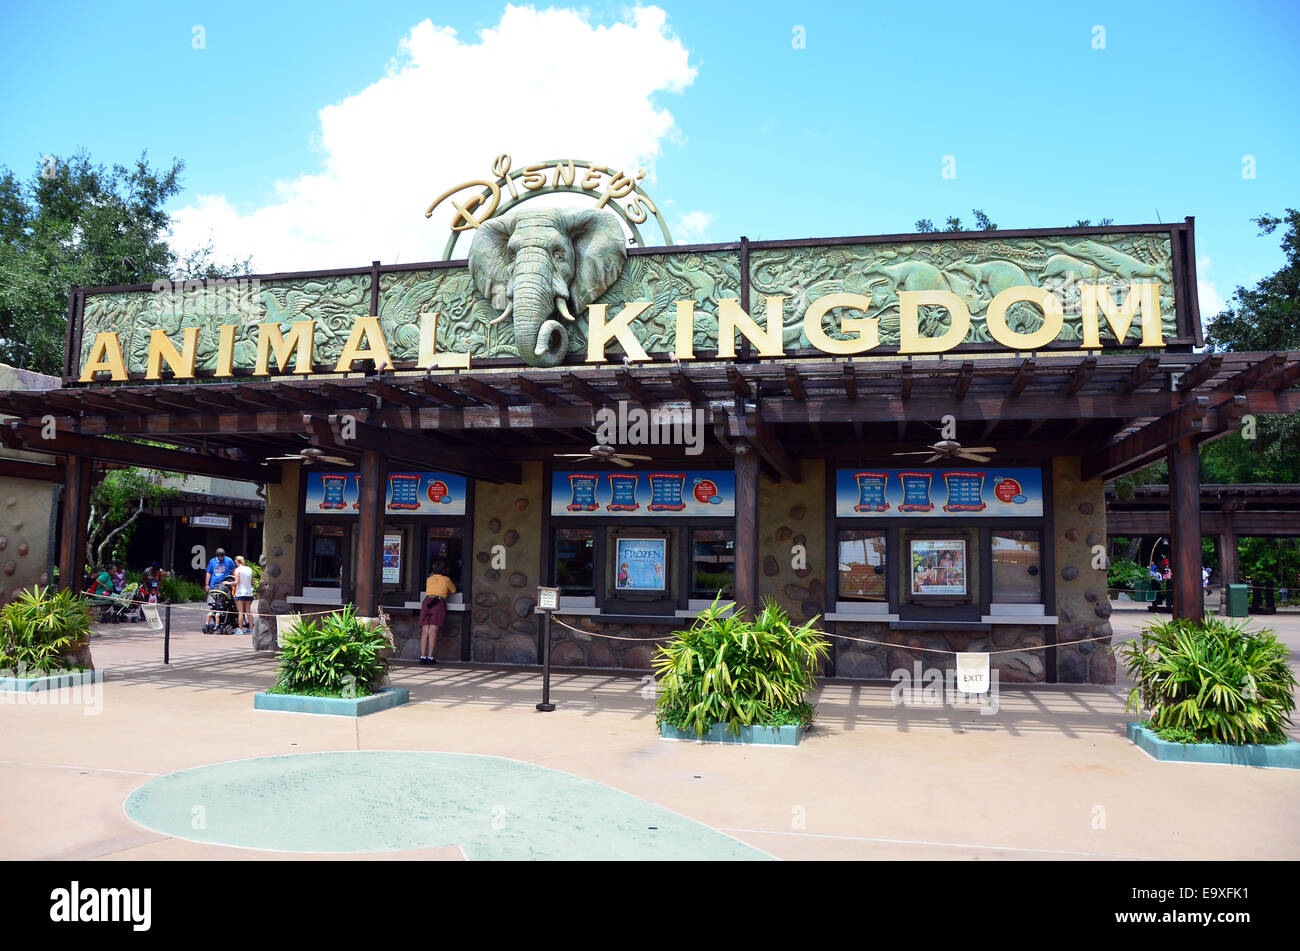 Entrance to Disney's Animal Kingdom, at Walt Disney World Resort, Orlando, Florida - Stock Image